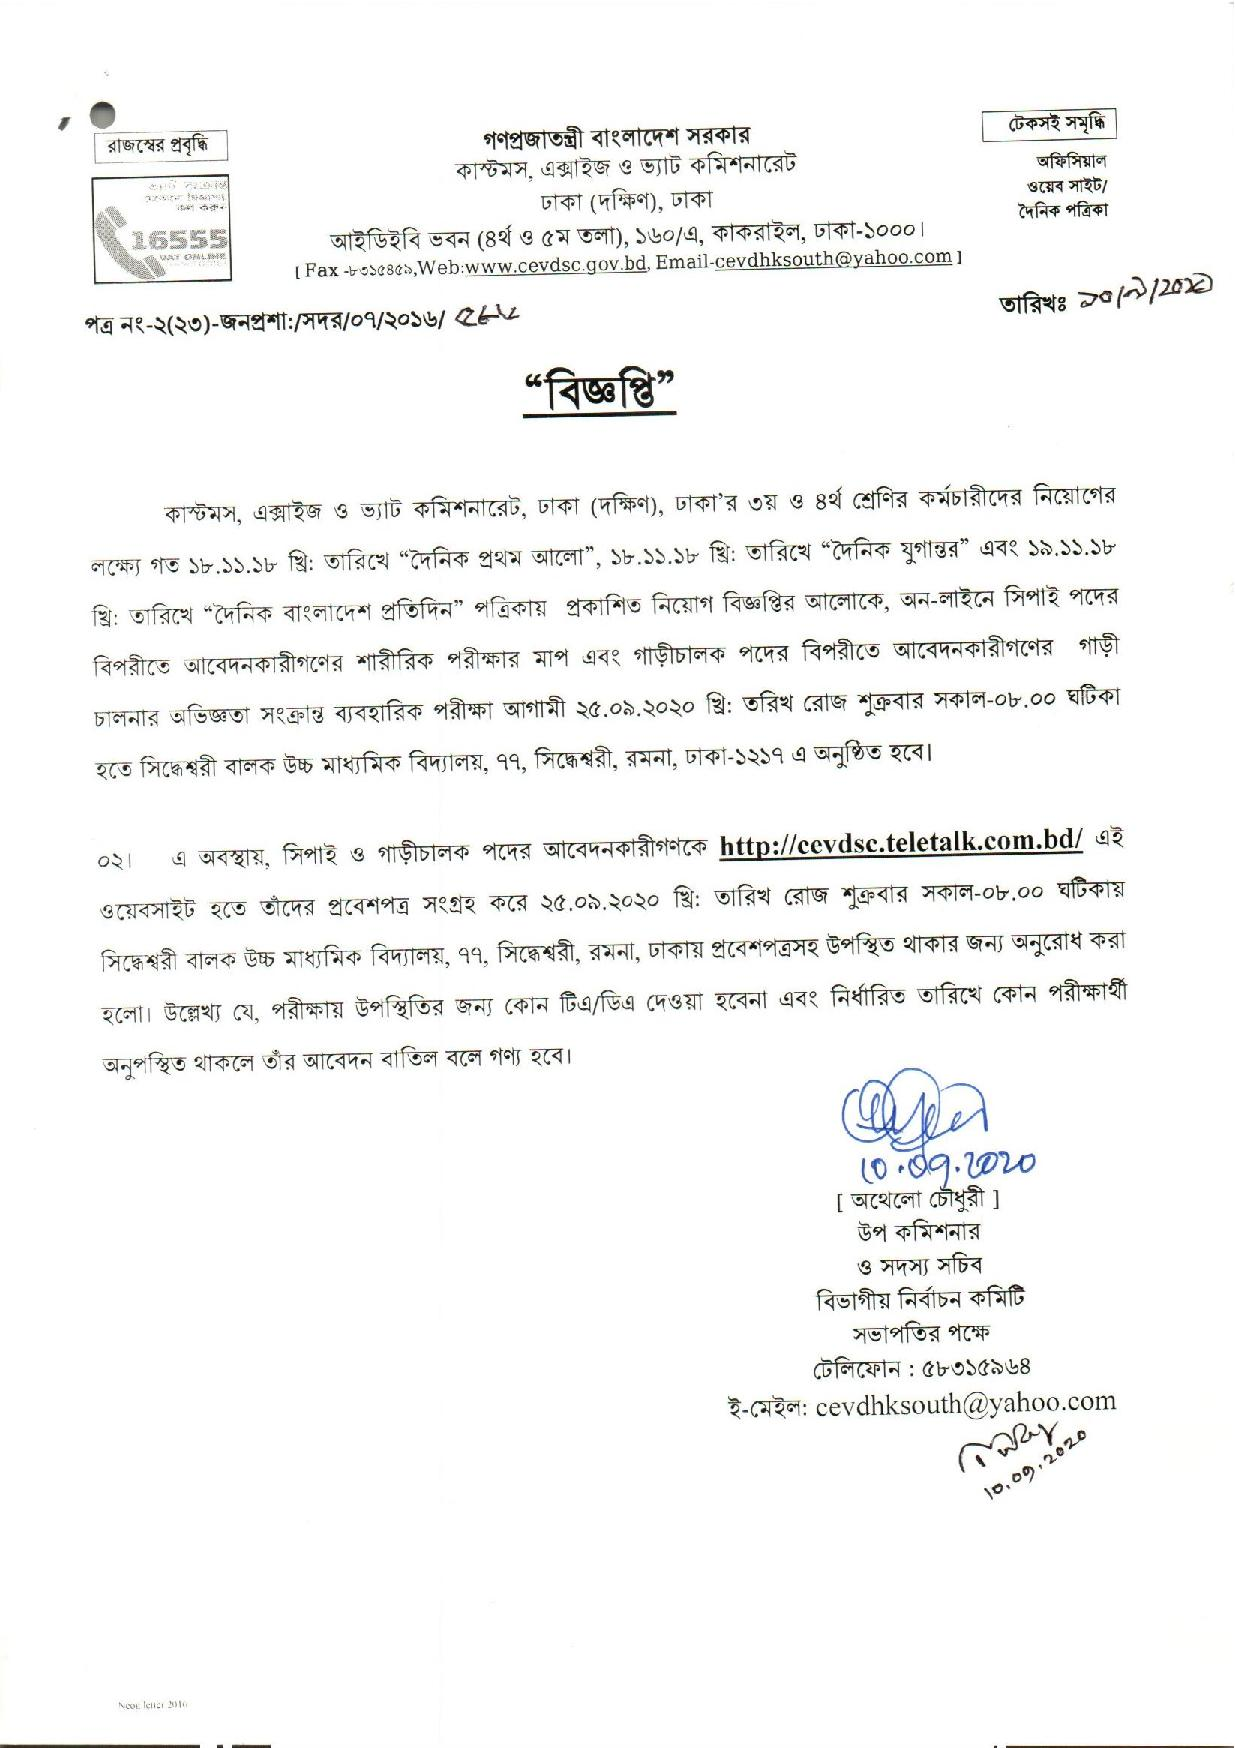 Customs, Excise & VAT Commissionerate, Dhaka(South) Exam date and Admit card 2020